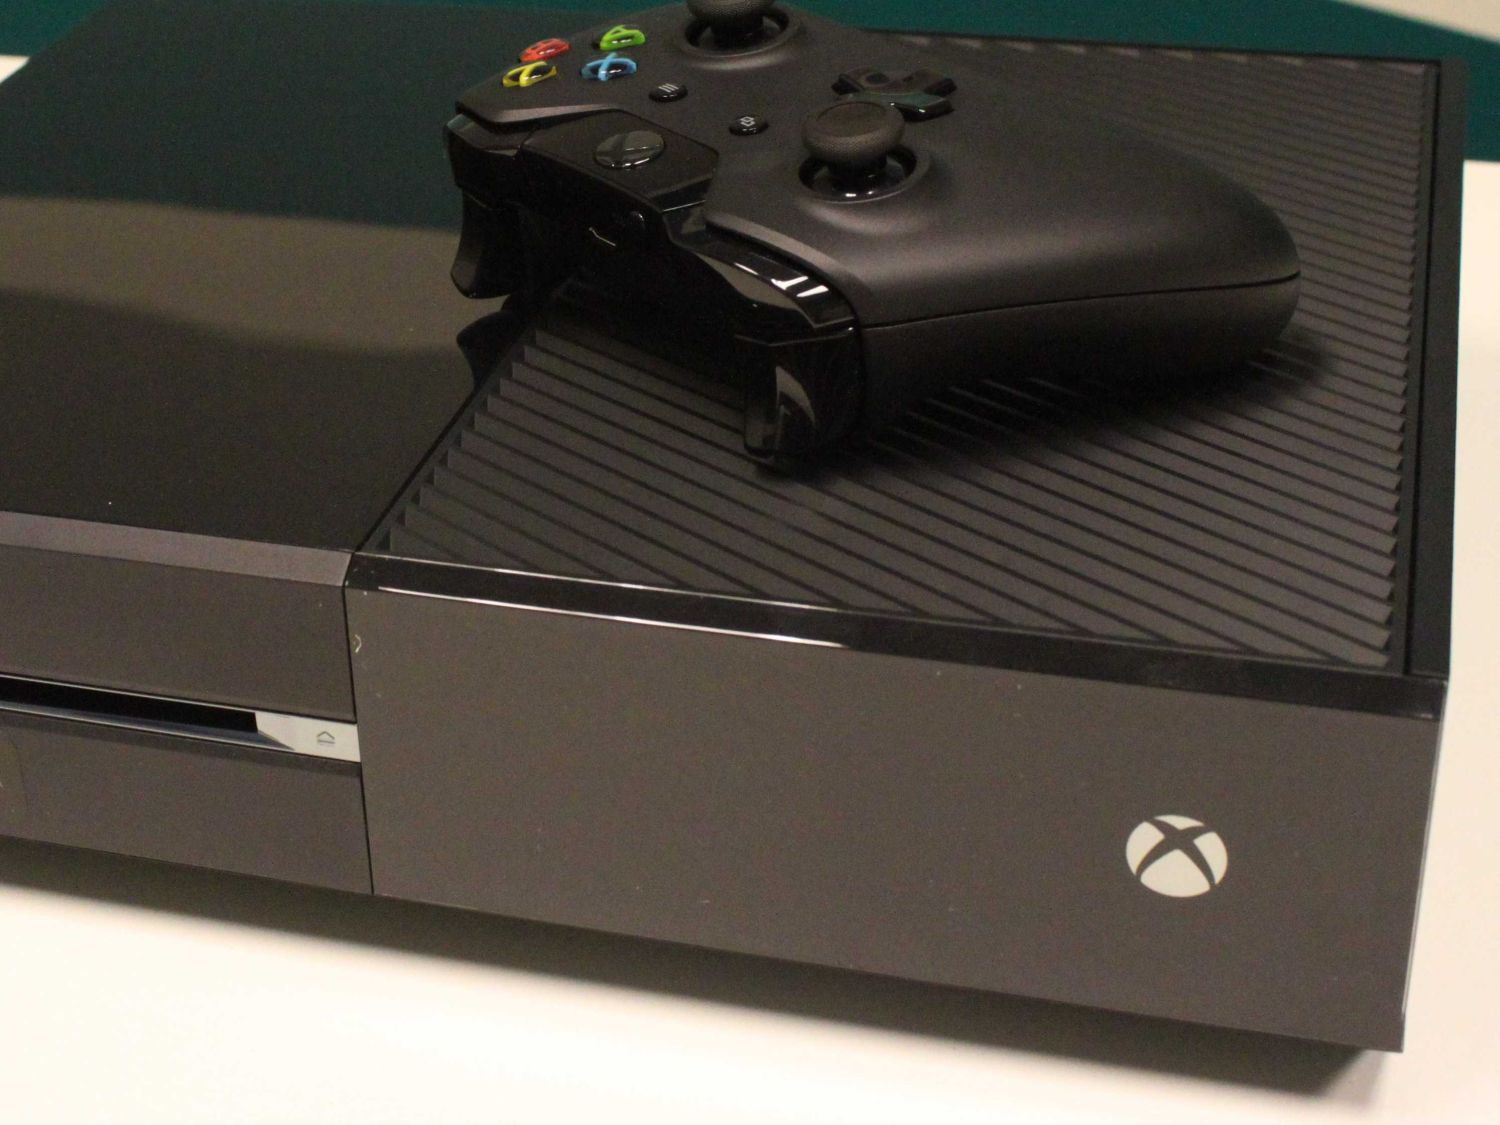 photos that show the xbox one is a massive console